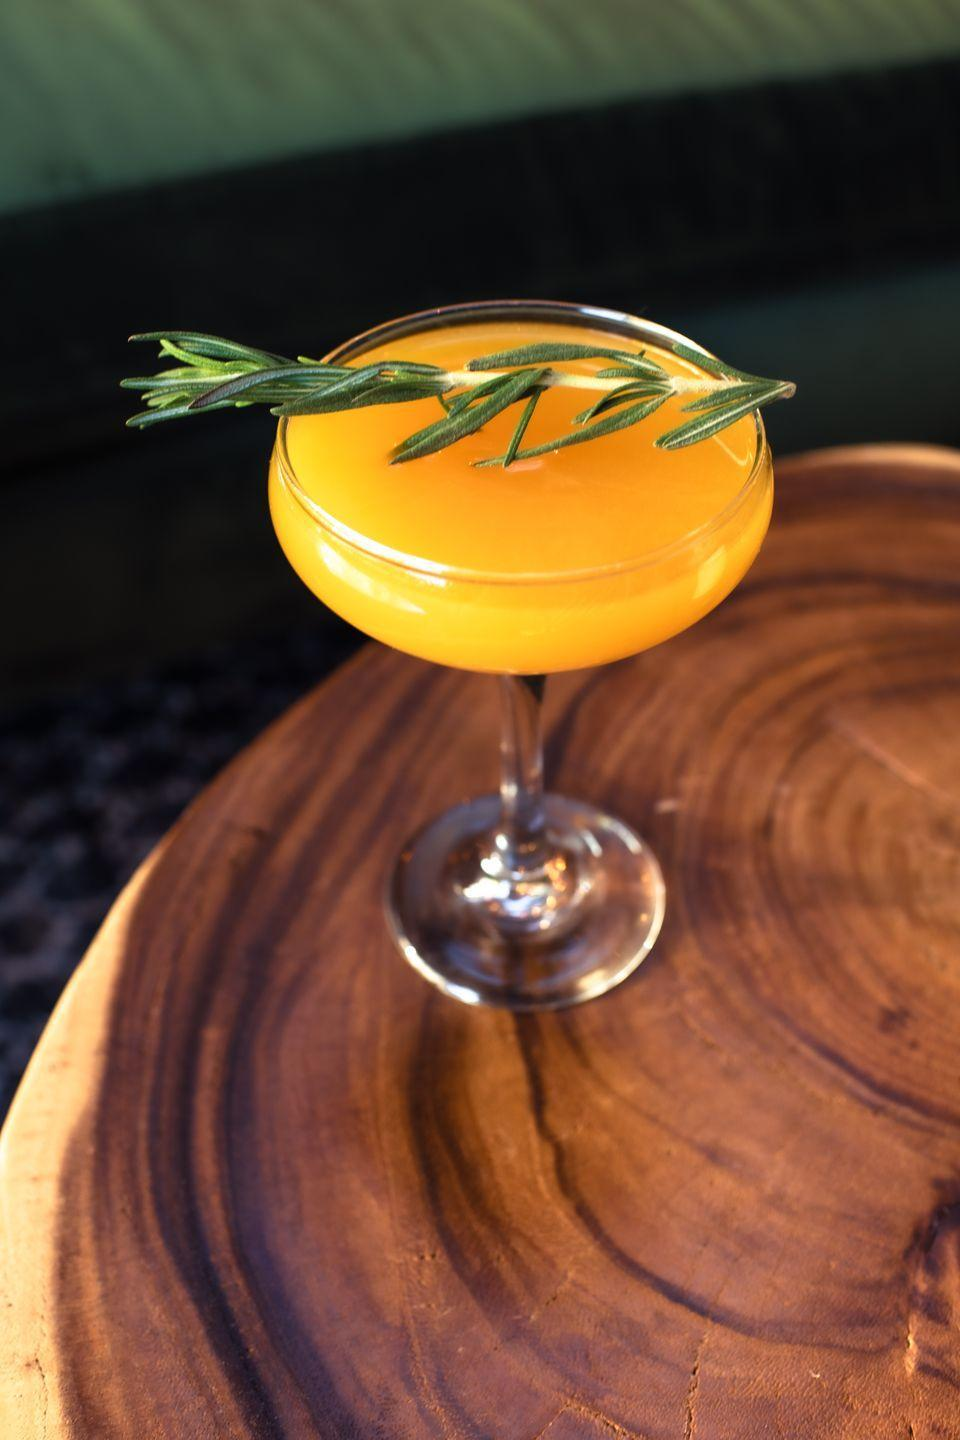 """<p>Created at the Cottontail Lounge at W Scottsdale, this drink not only reflects the name of the bar where it was born, but it also feels reminiscent of a favorite springtime character—Peter Cottontail—and his love of carrots.</p><p><strong>Ingredients:</strong></p><p>2 parts Jack Daniels (or other whiskey of choice)</p><p>1 part Demerara syrup</p><p>3 parts carrot-orange-turmeric juice (we love<a href=""""https://pressedjuicery.com/products/orange-turmeric-apple-lemon-juice"""" rel=""""nofollow noopener"""" target=""""_blank"""" data-ylk=""""slk:Pressed Juicery"""" class=""""link rapid-noclick-resp""""> Pressed Juicery</a>'s option)</p><p>sprig of rosemary, for garnish</p><p>Directions:</p><ol><li>Combine whiskey, Demerara syrup, and juice in a cocktail shaker with ice.</li></ol><p>2. Shake and strain over a coupe glass, garnishing with a sprig of rosemary.</p>"""